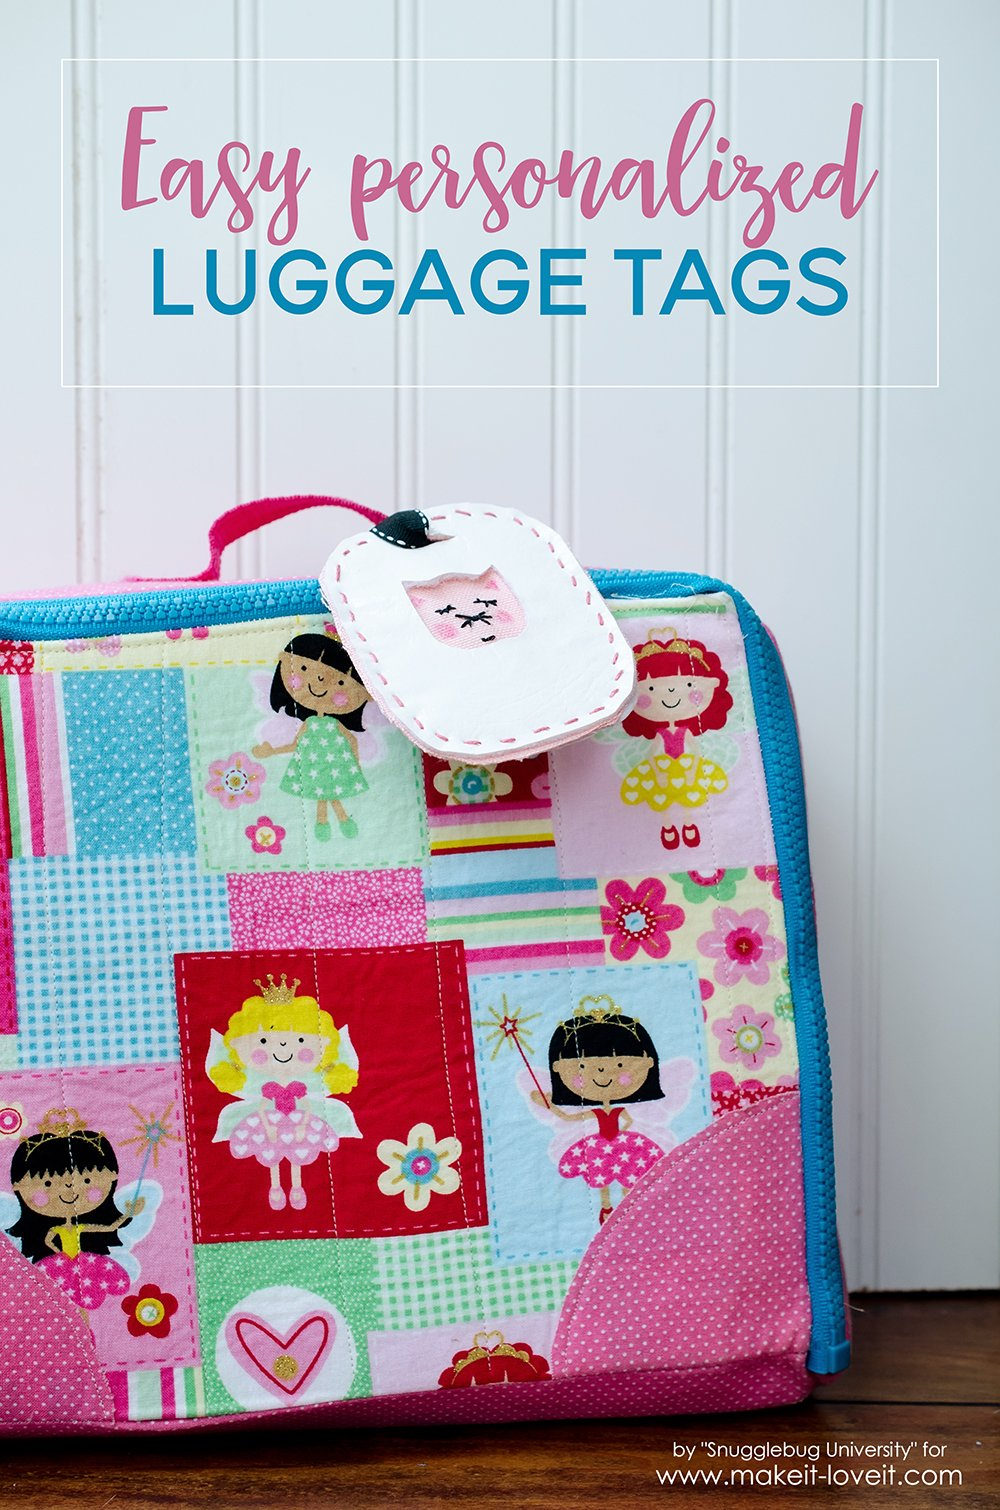 Easy personalized luggage tags